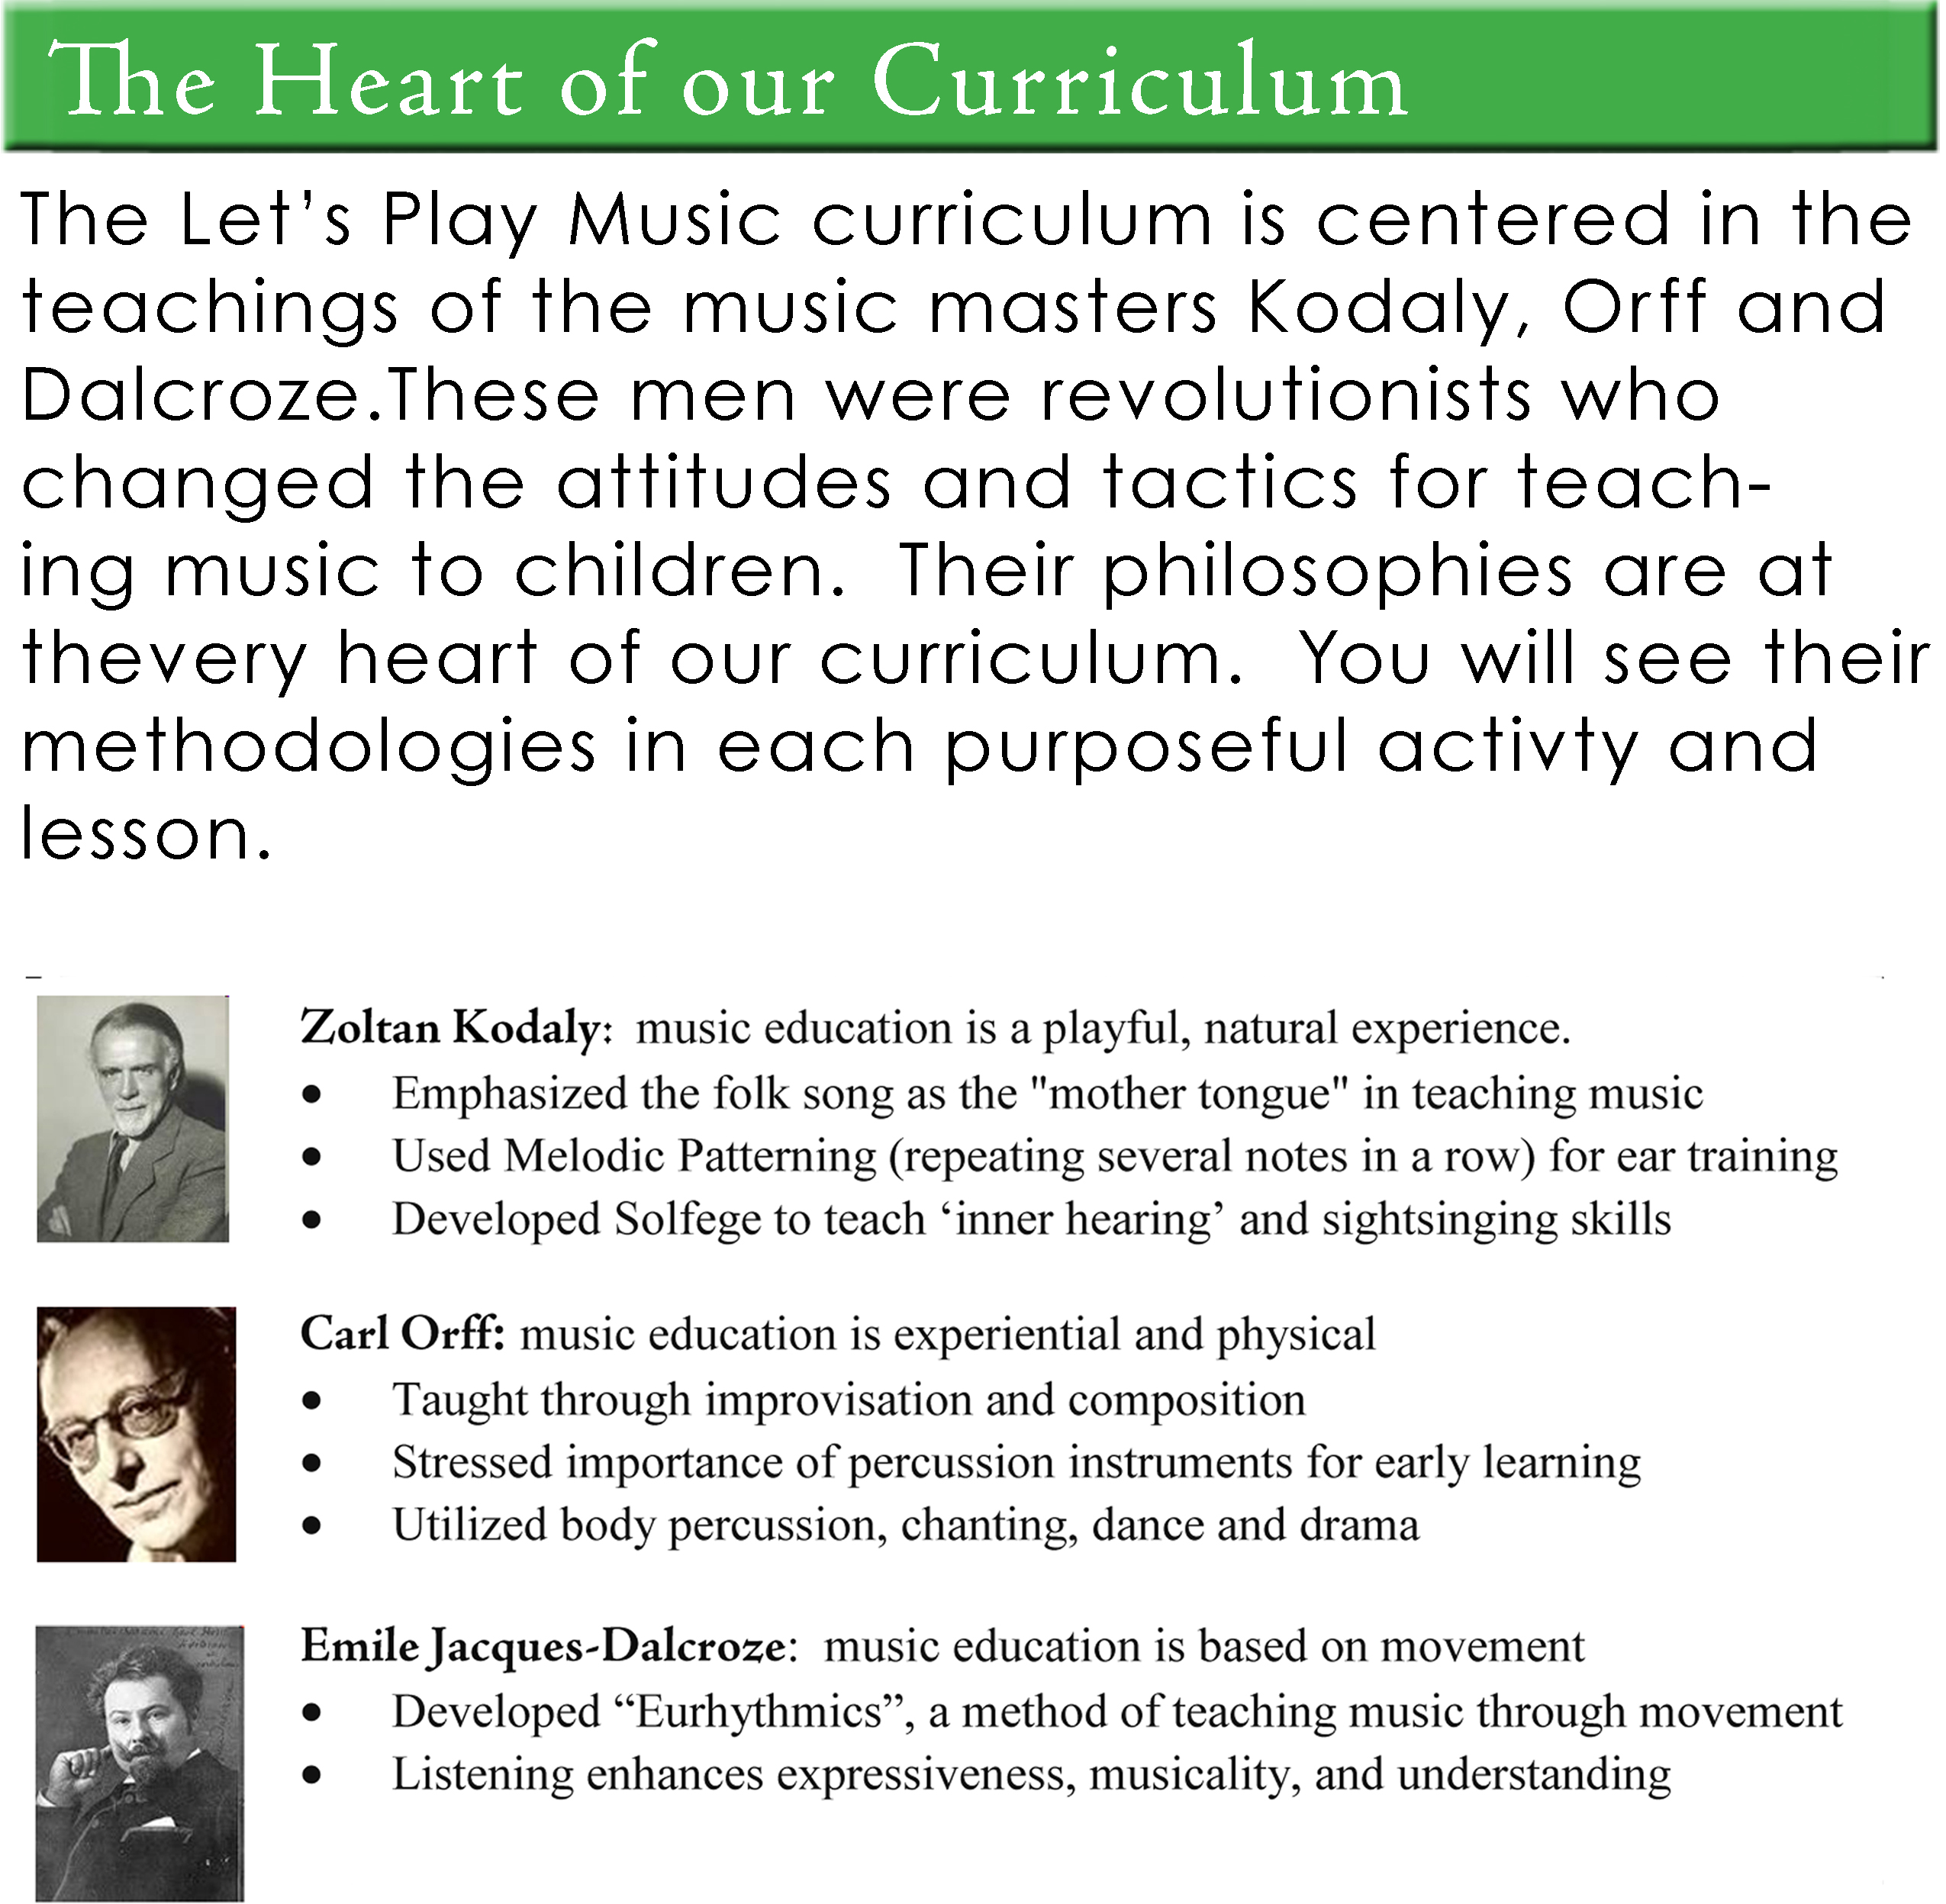 The Heart of Our Curriculum